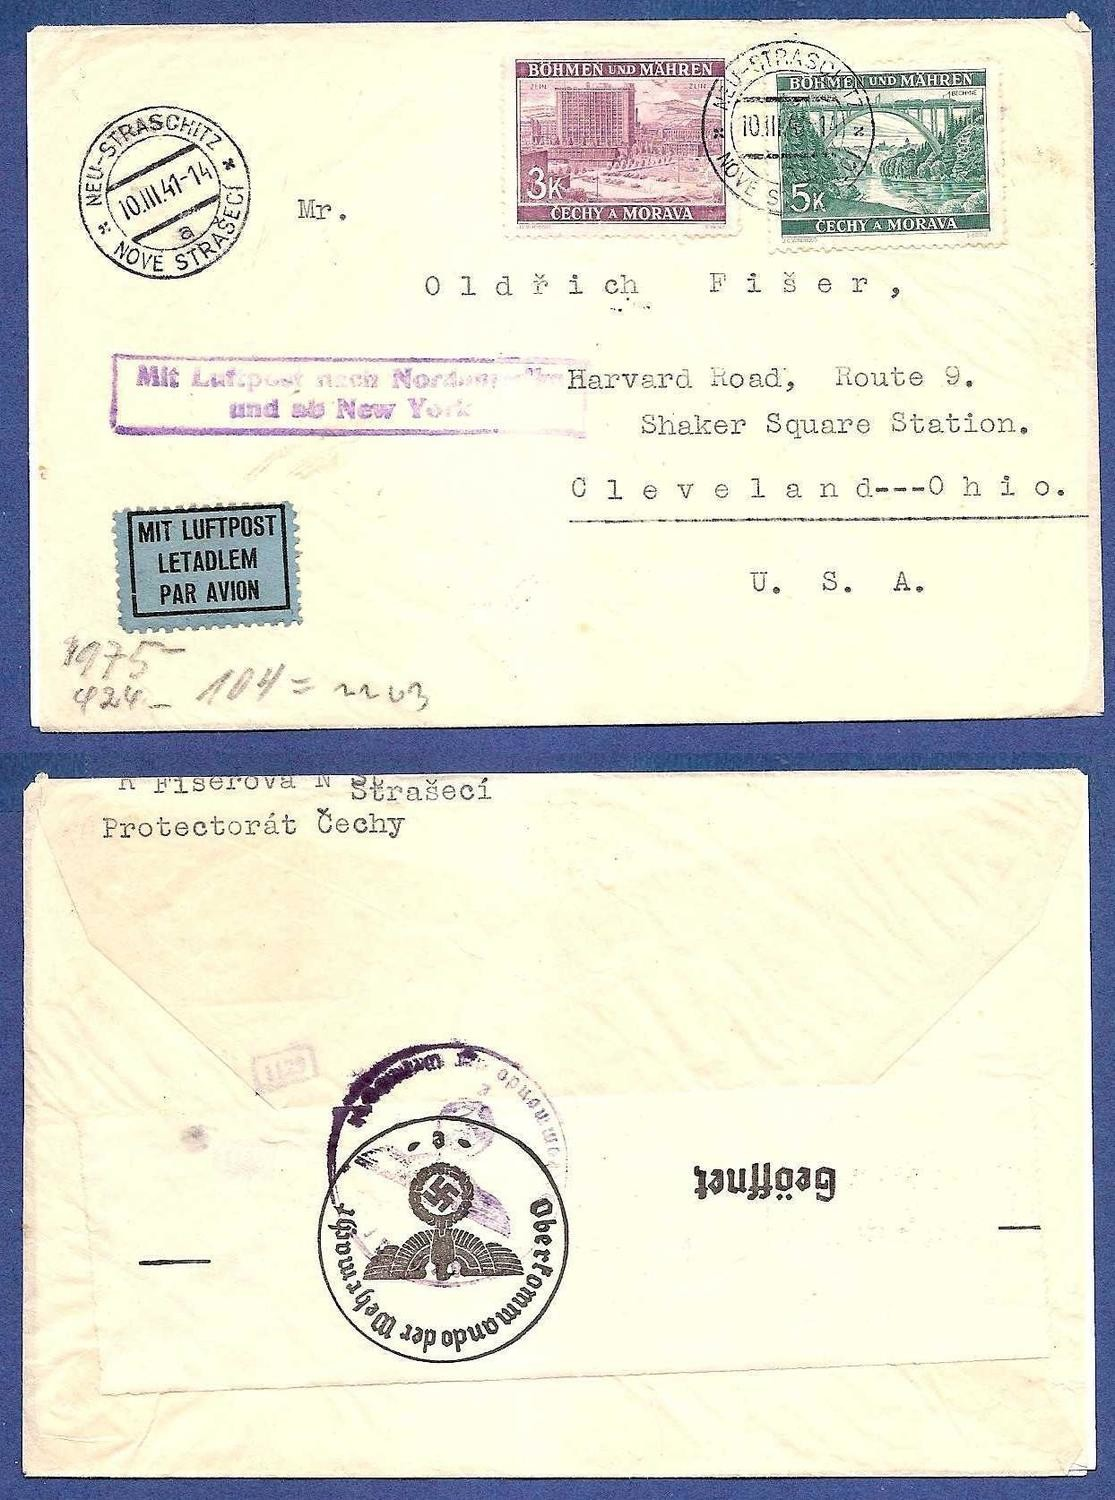 BOHEMEN MORAVIA airmail cover 1941 to USA